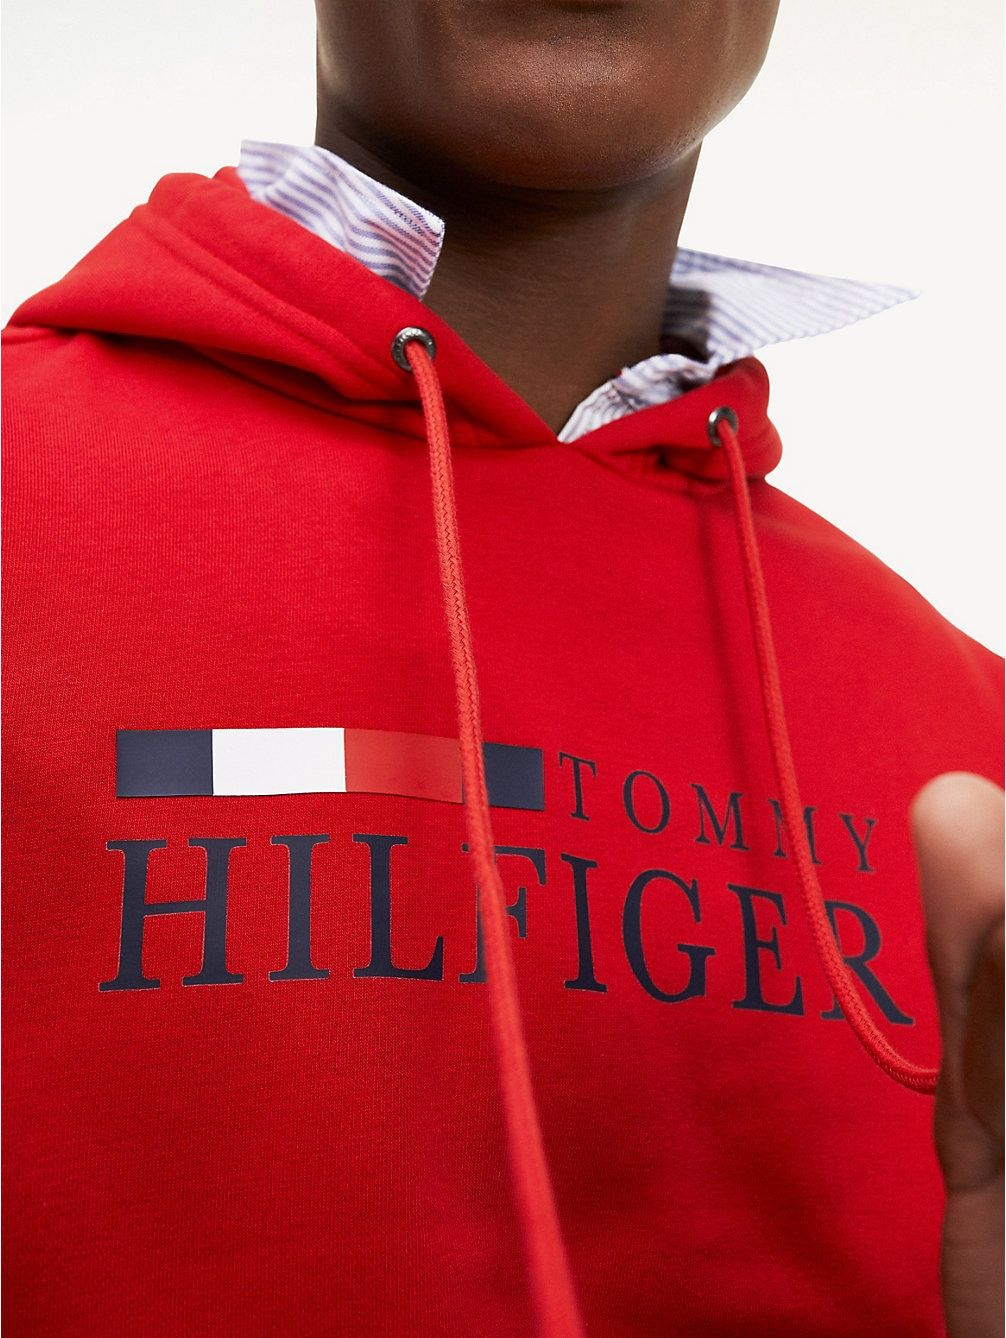 Sweat Homme Sweat Shirts Tommy Hilfiger Fr Vêtements Homme Sweatshirt Homme Tommy Hilfiger